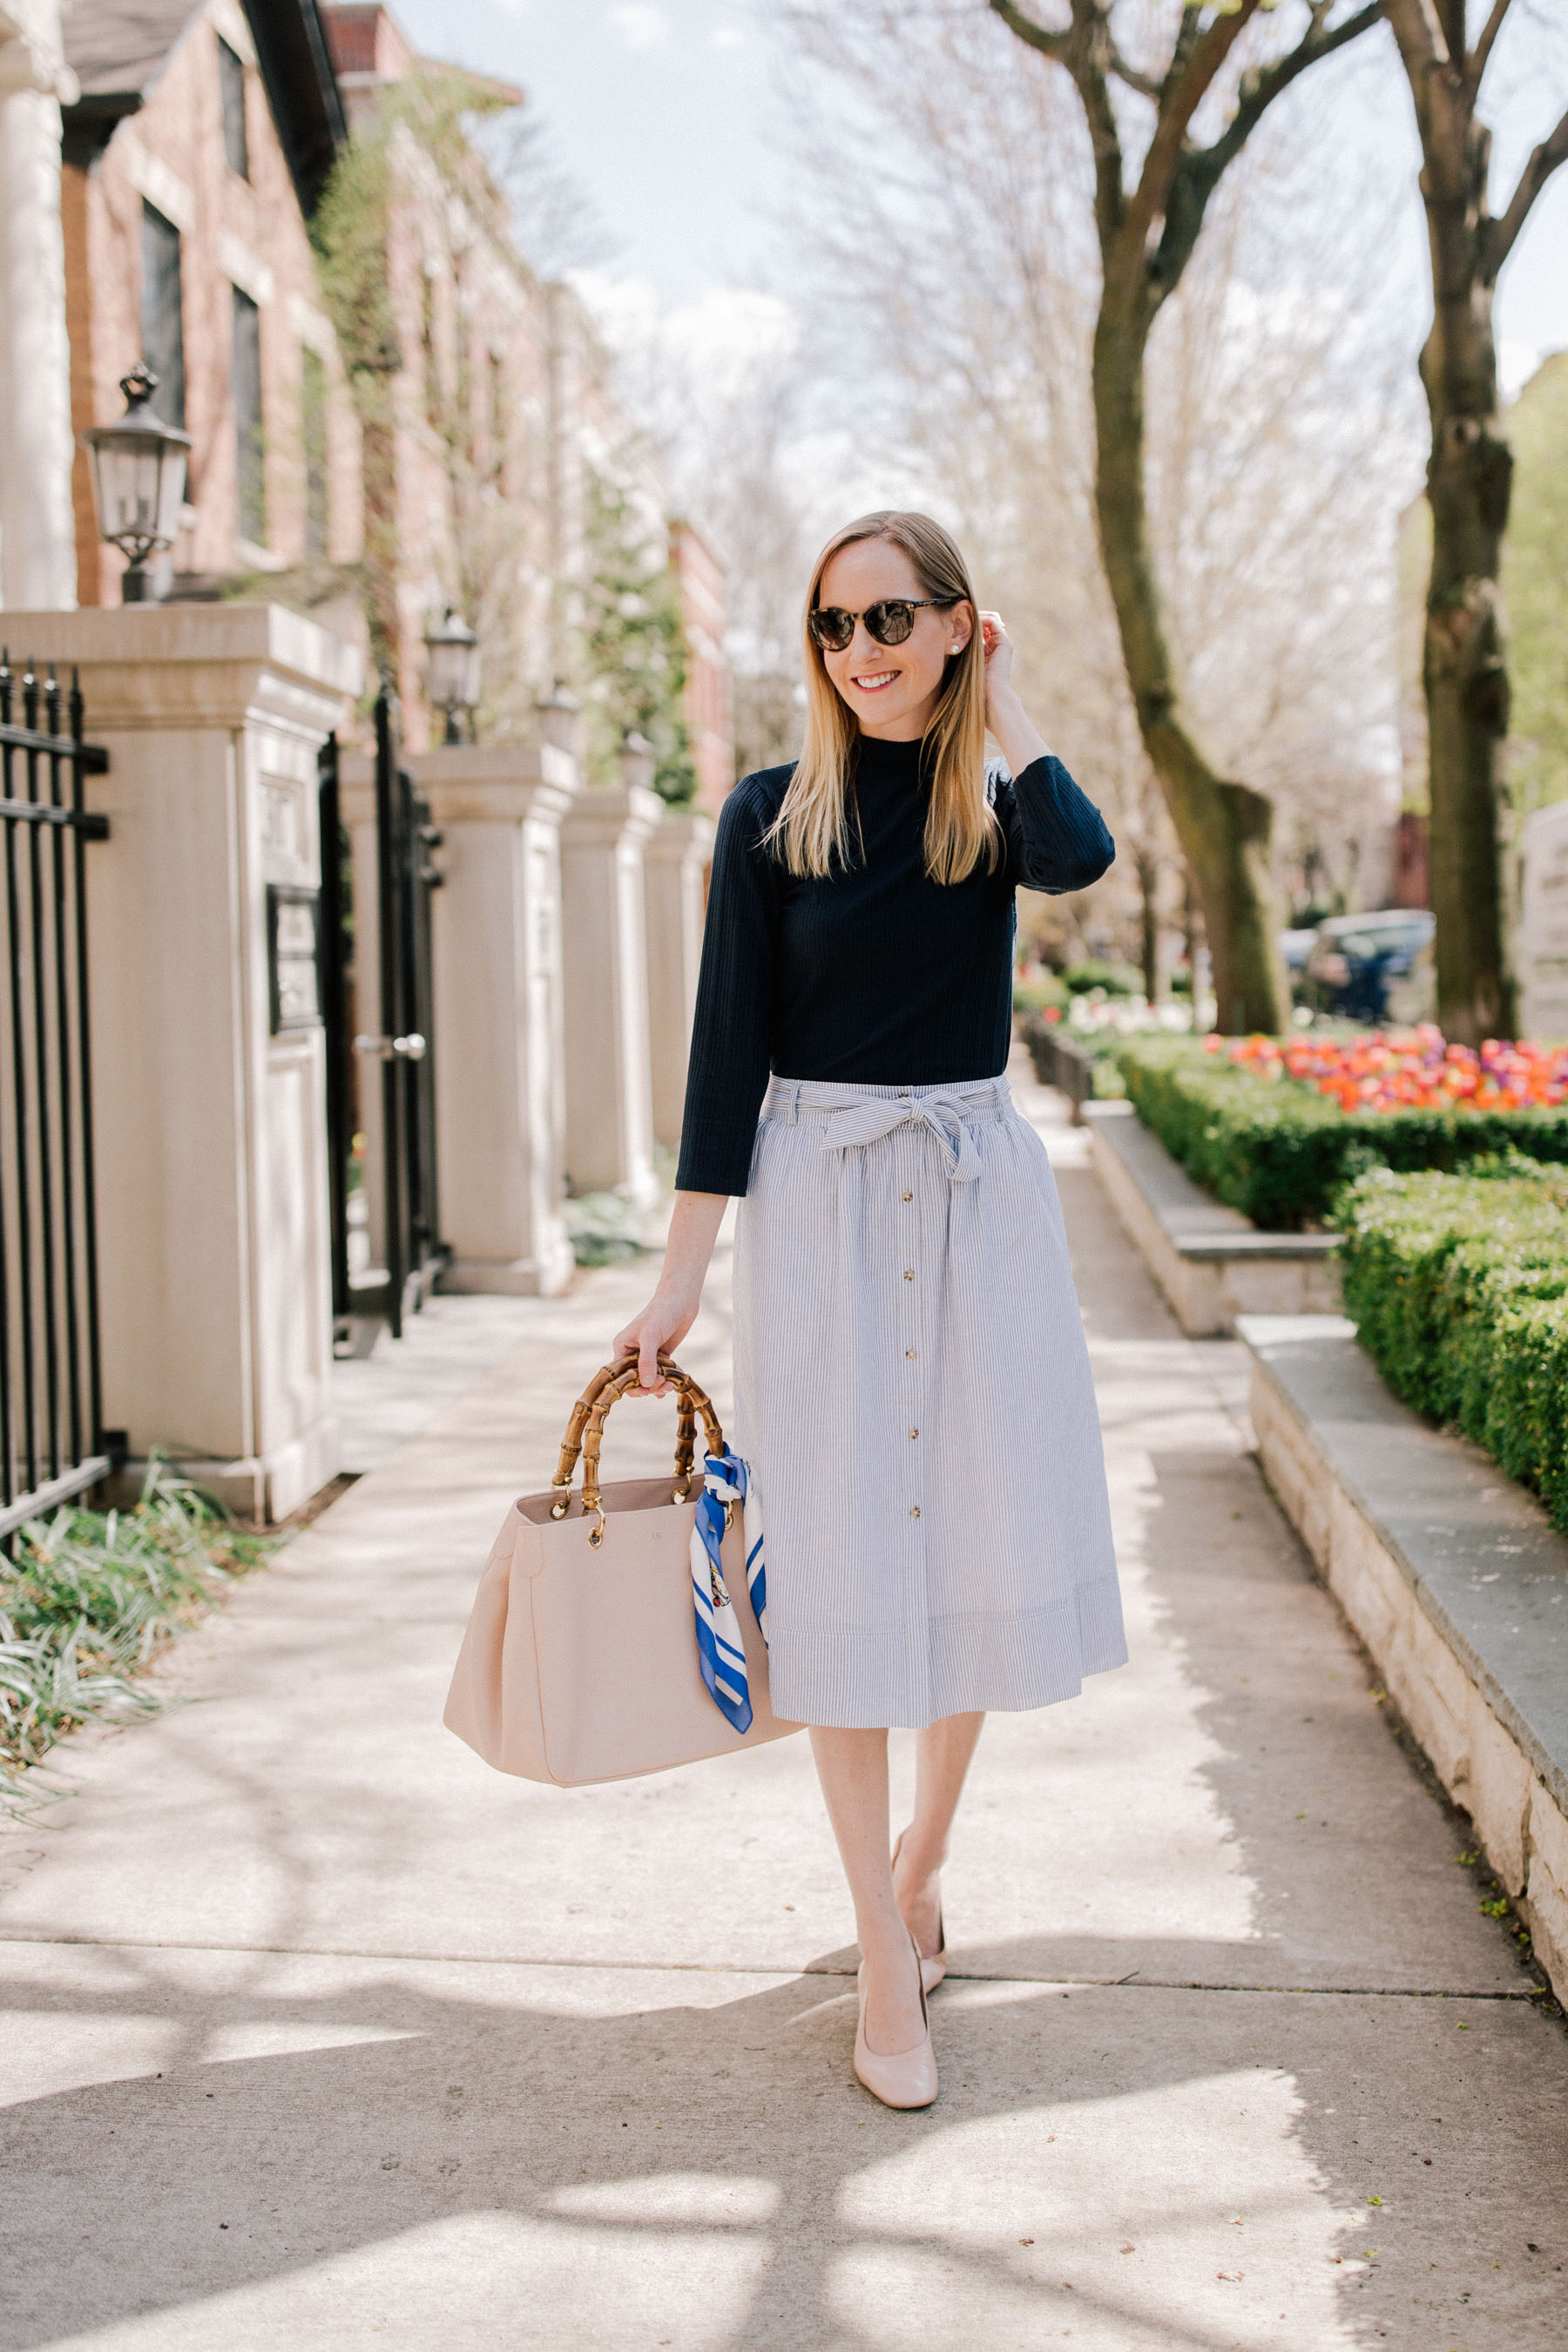 Preppy Spring Outfit: Kelly in the City